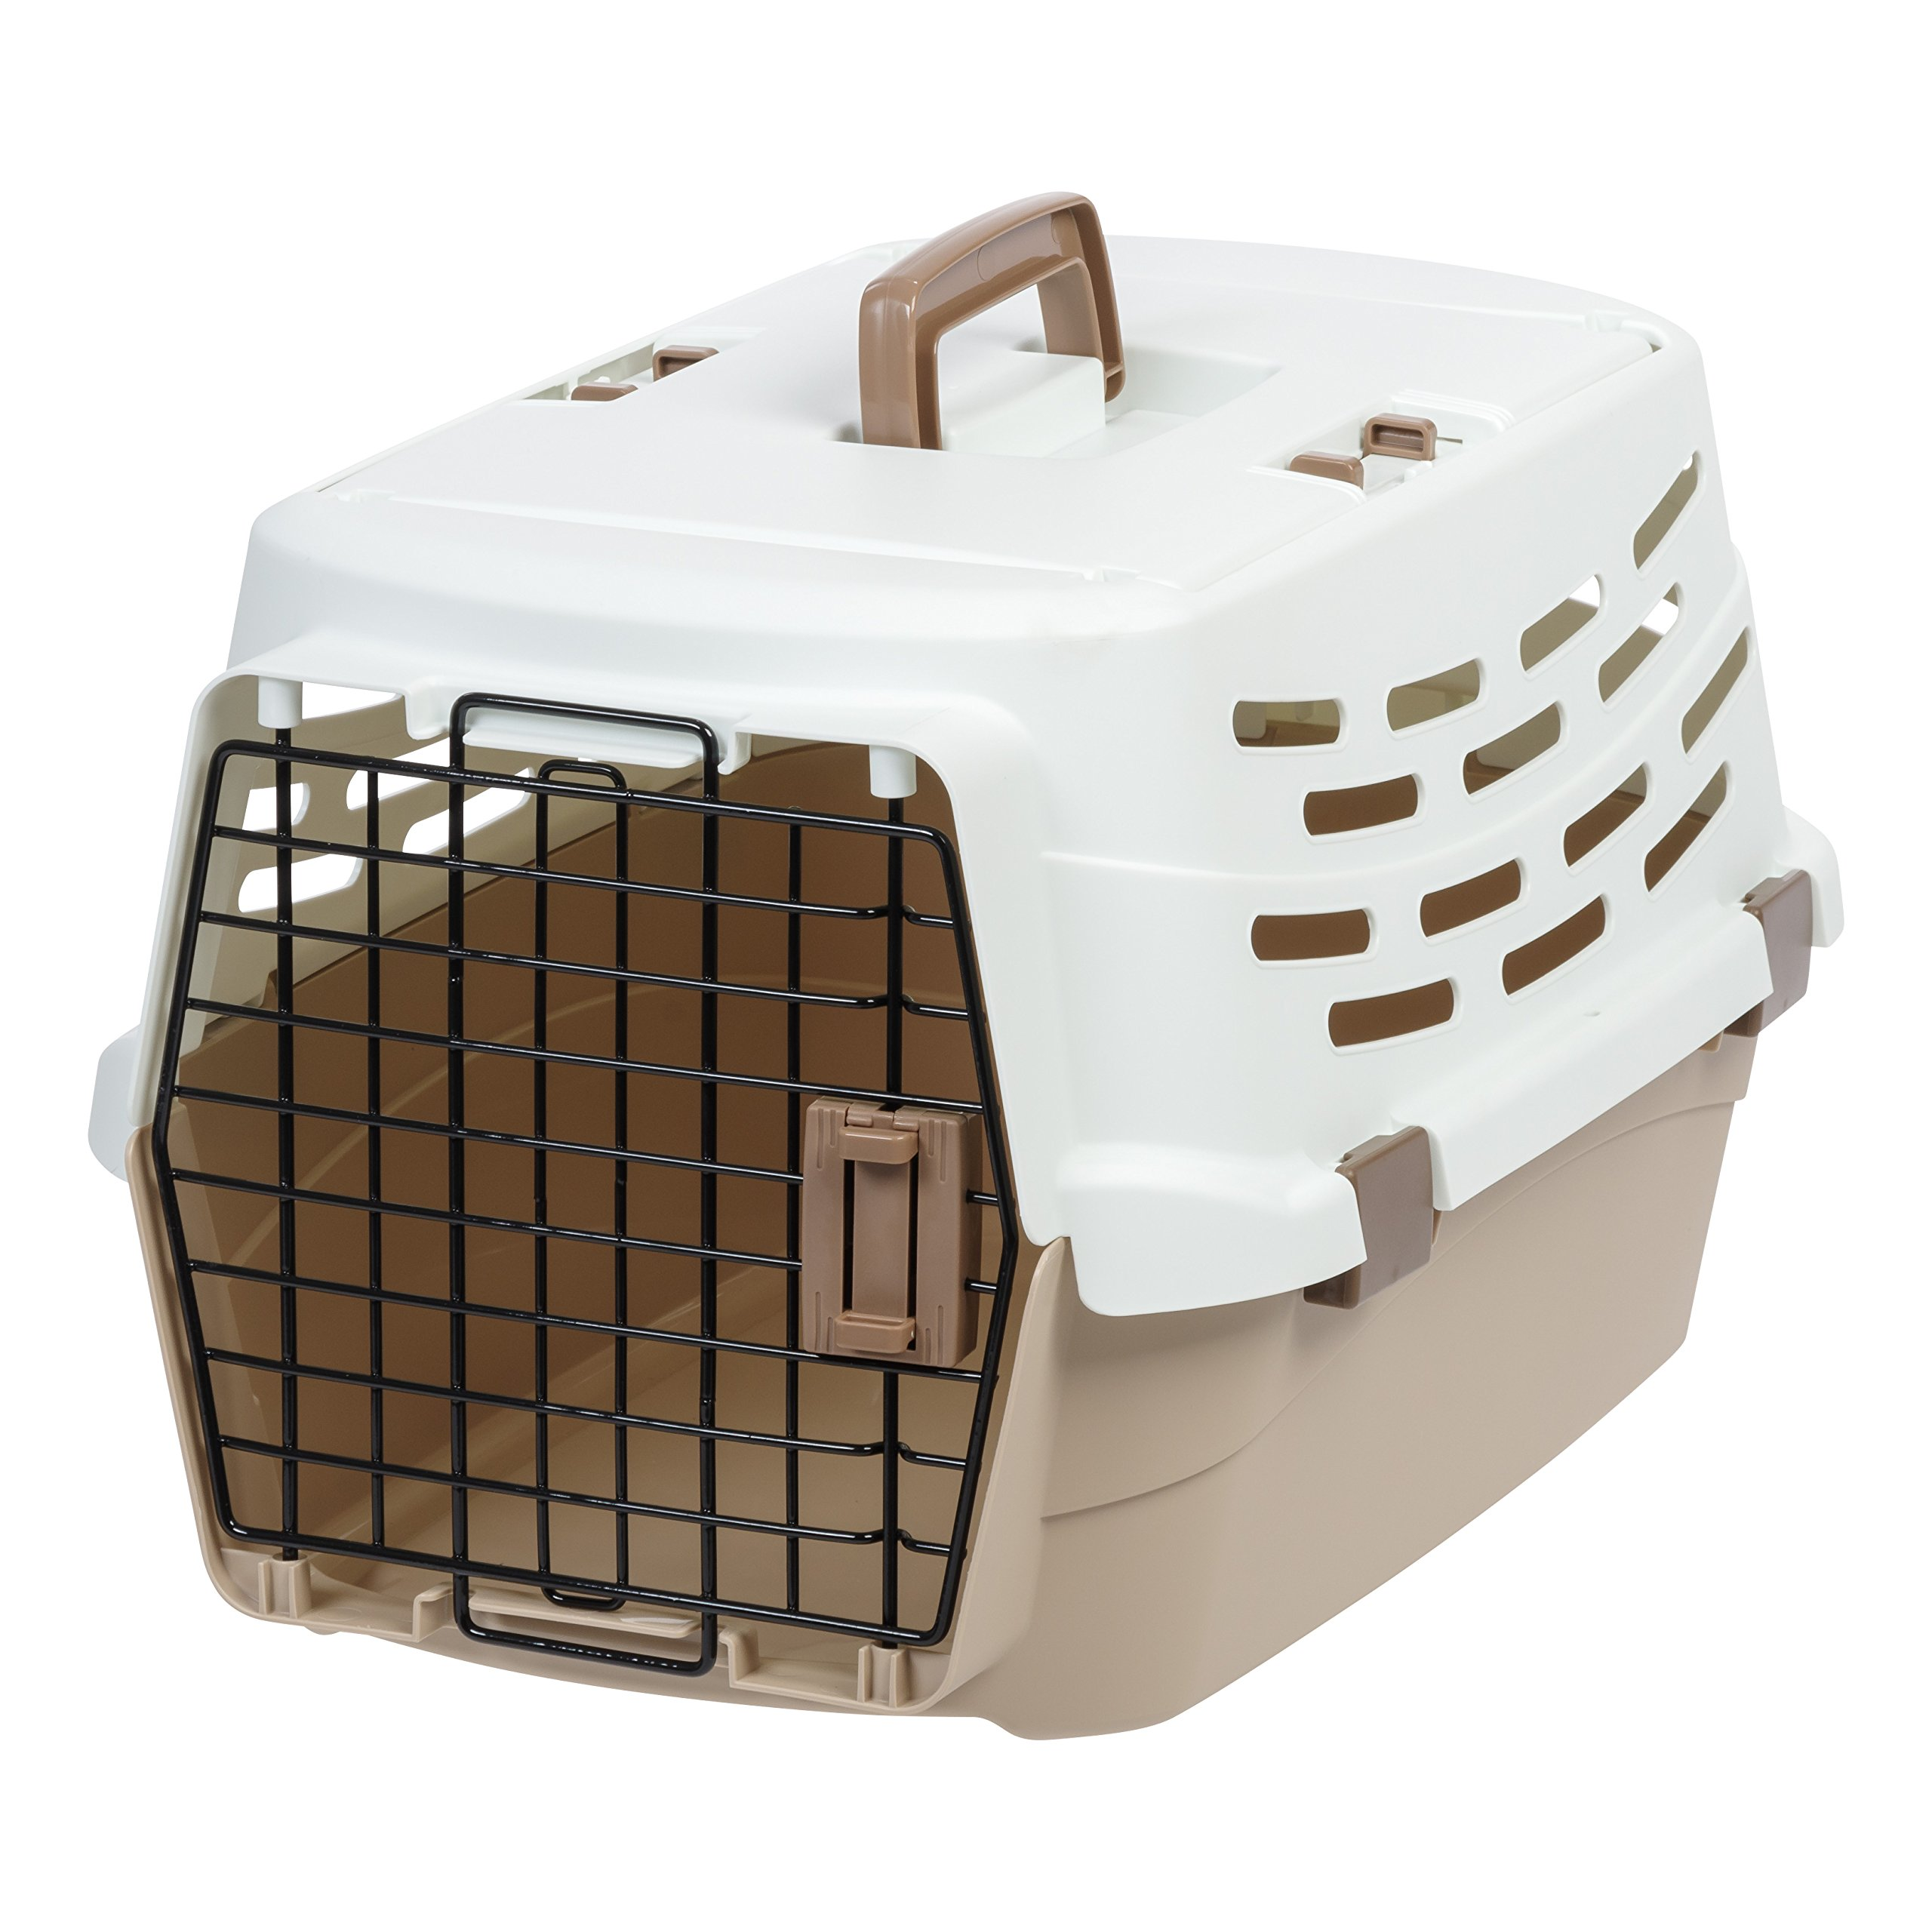 IRIS Medium Easy Access Pet Travel Carrier, Off-White/Brown by IRIS USA, Inc.